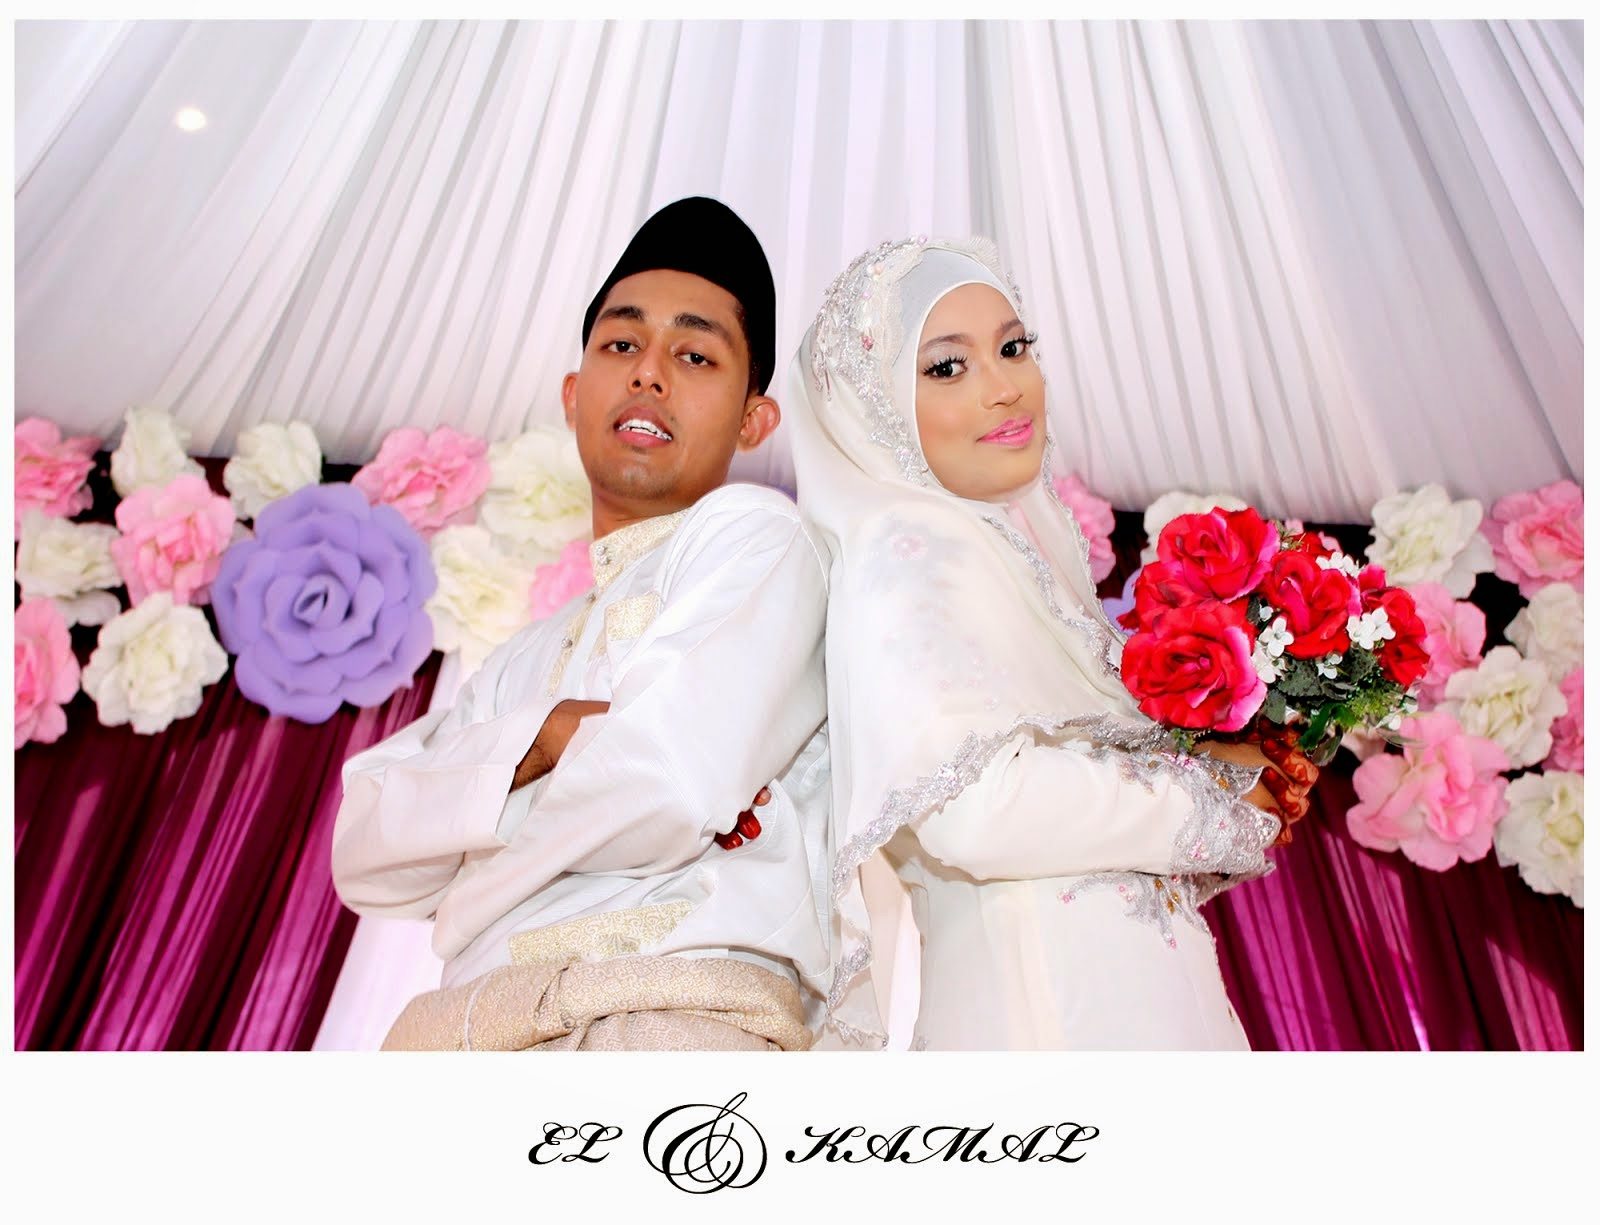 Fotografi for wedding, anual dinner, private function n etc.